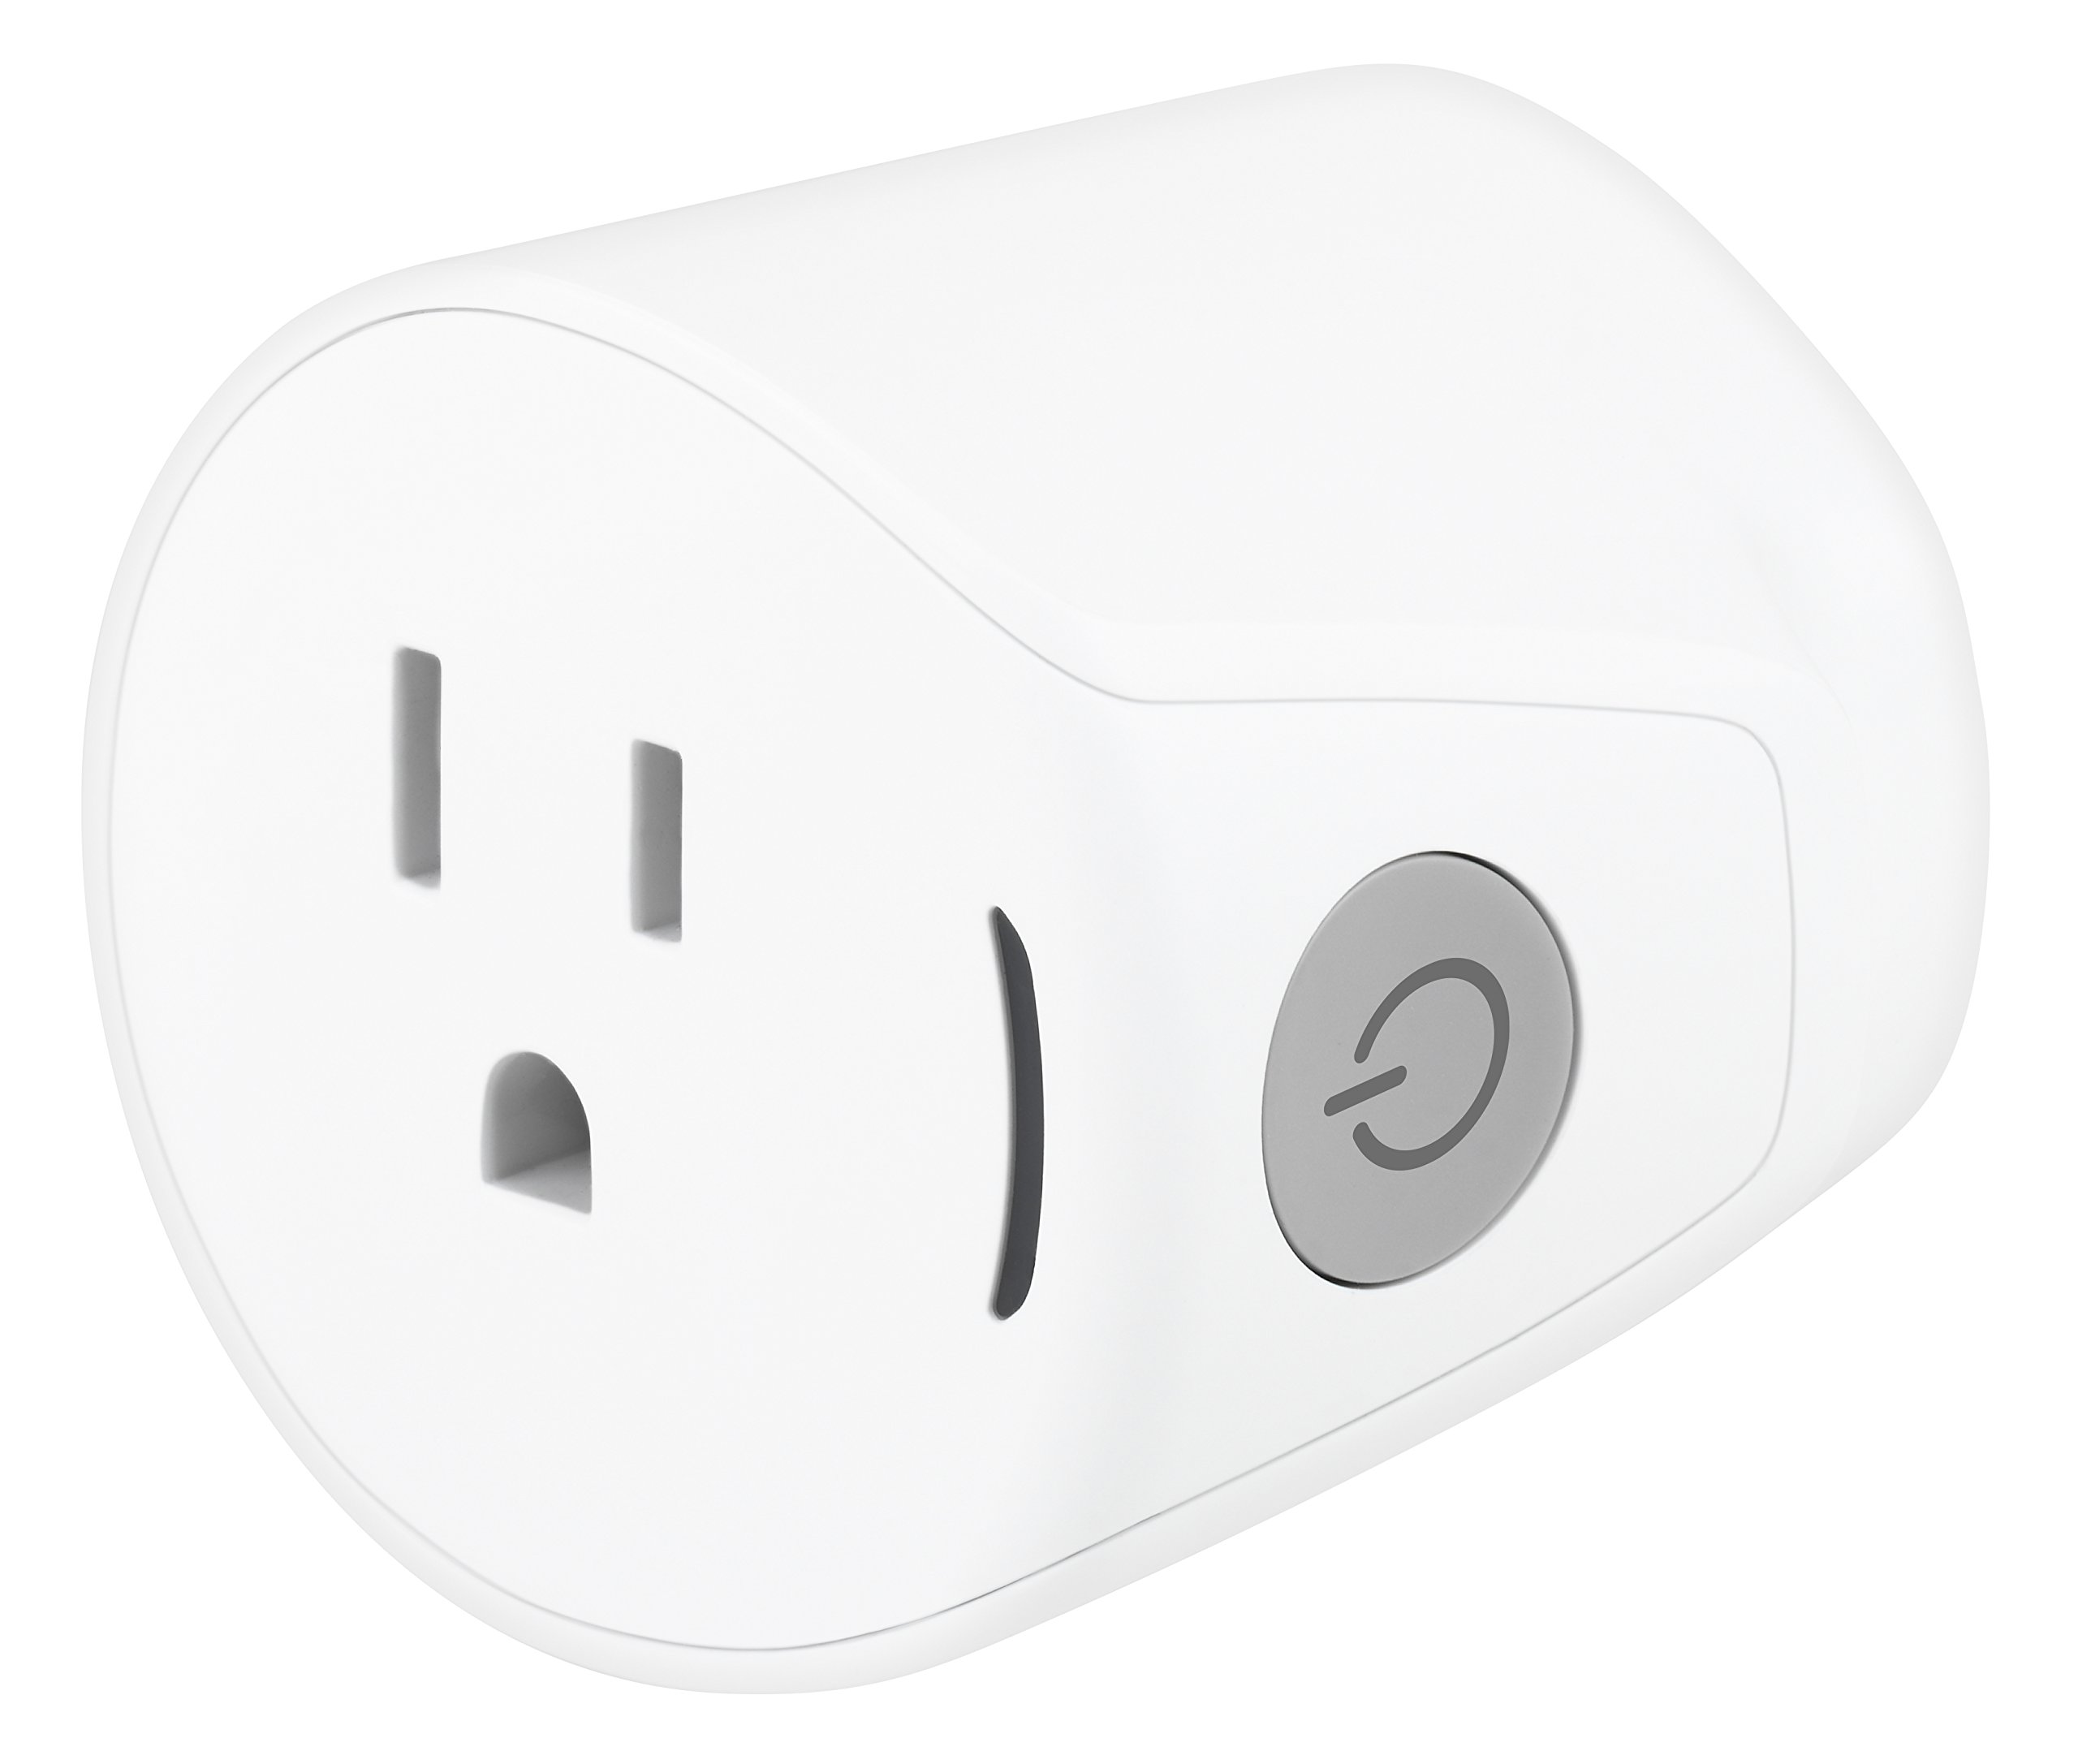 Samsung  F-OUT-US-2 SmartThings Outlet, White by Samsung SmartThings (Image #2)